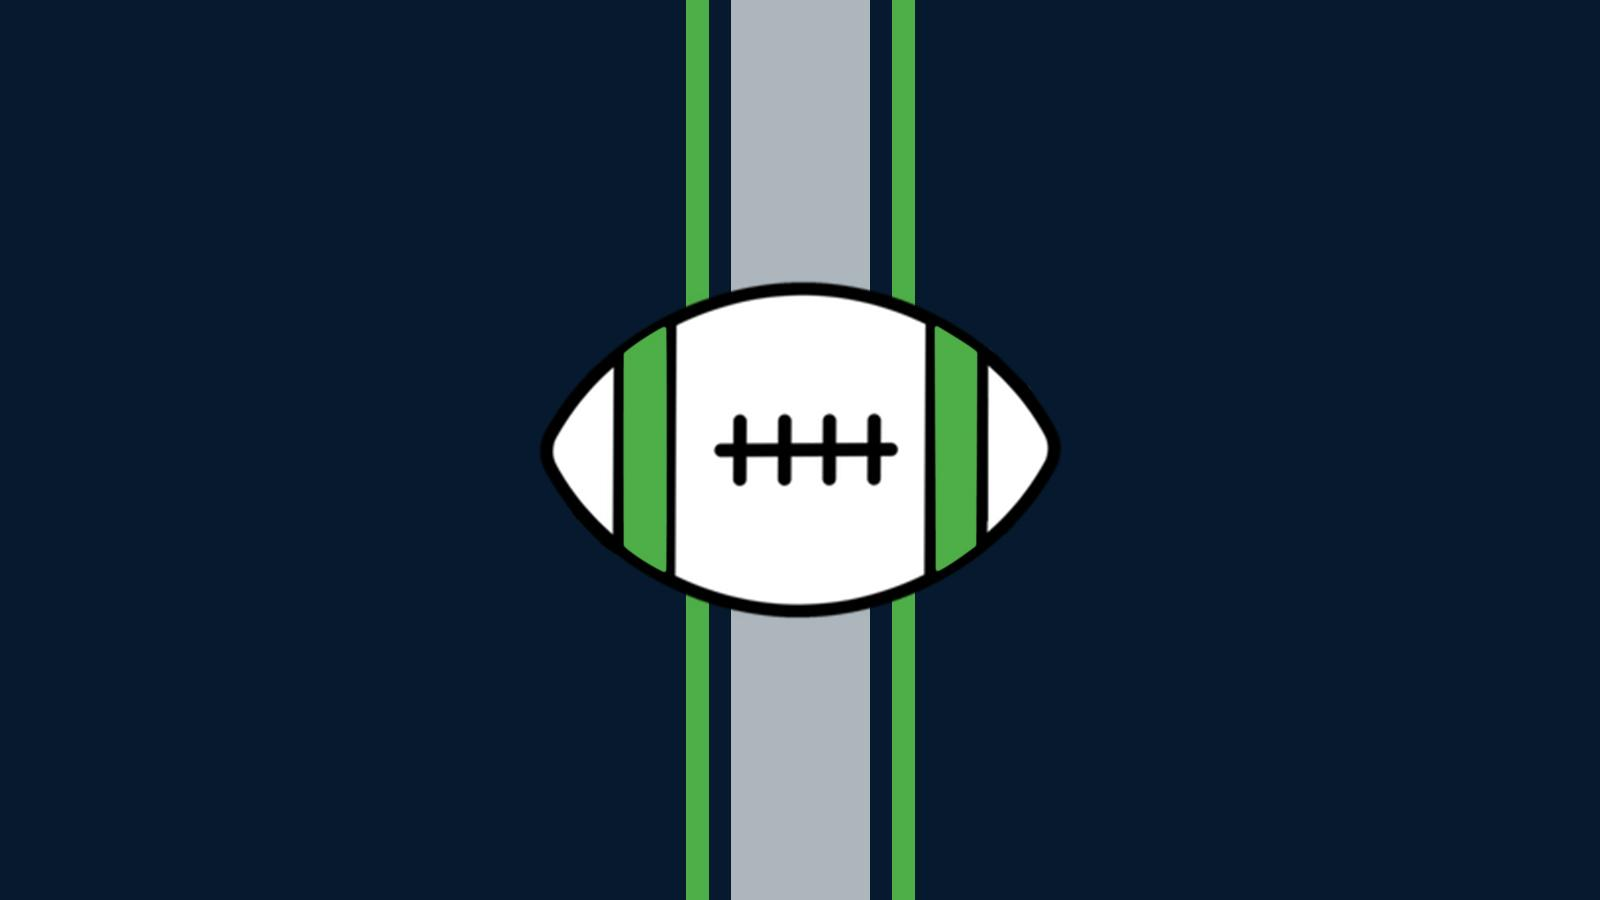 NFC Wild Card or Divisional Playoffs - TBD at Seattle Seahawks (Date TBD) (If Necessary)